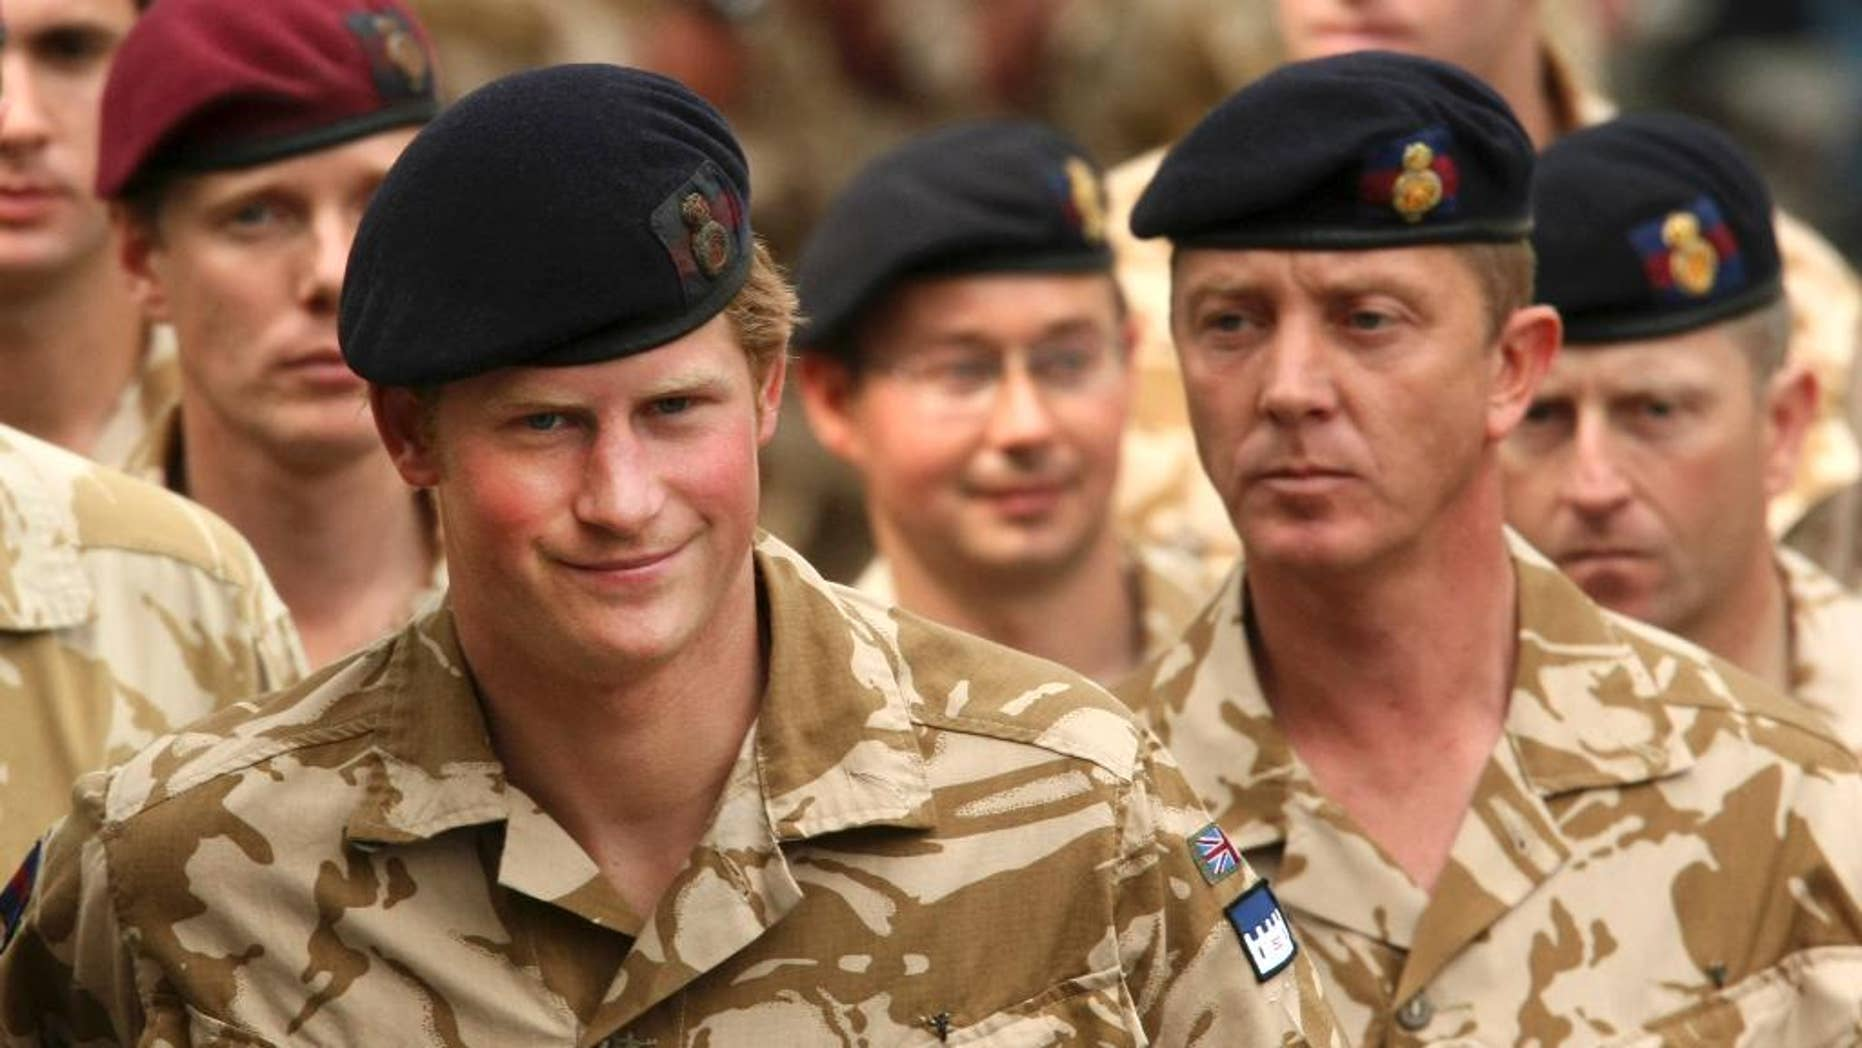 File-This May 5, 2008, file photo shows Britain's Prince Harry, left, arriving for a thanksgiving service at the Army Garrison Church in Windsor, England, after receiving a campaign medal for serving in Afghanistan. Prince Harry will be embedded in Australian army units on the north, west and east coasts of the country during the British royal's hectic four-week secondment to the Australian defense forces next month before he ends his decade-long military career, officials said Tuesday, March 17, 2015. (AP Photo/Matt Dunham, File)